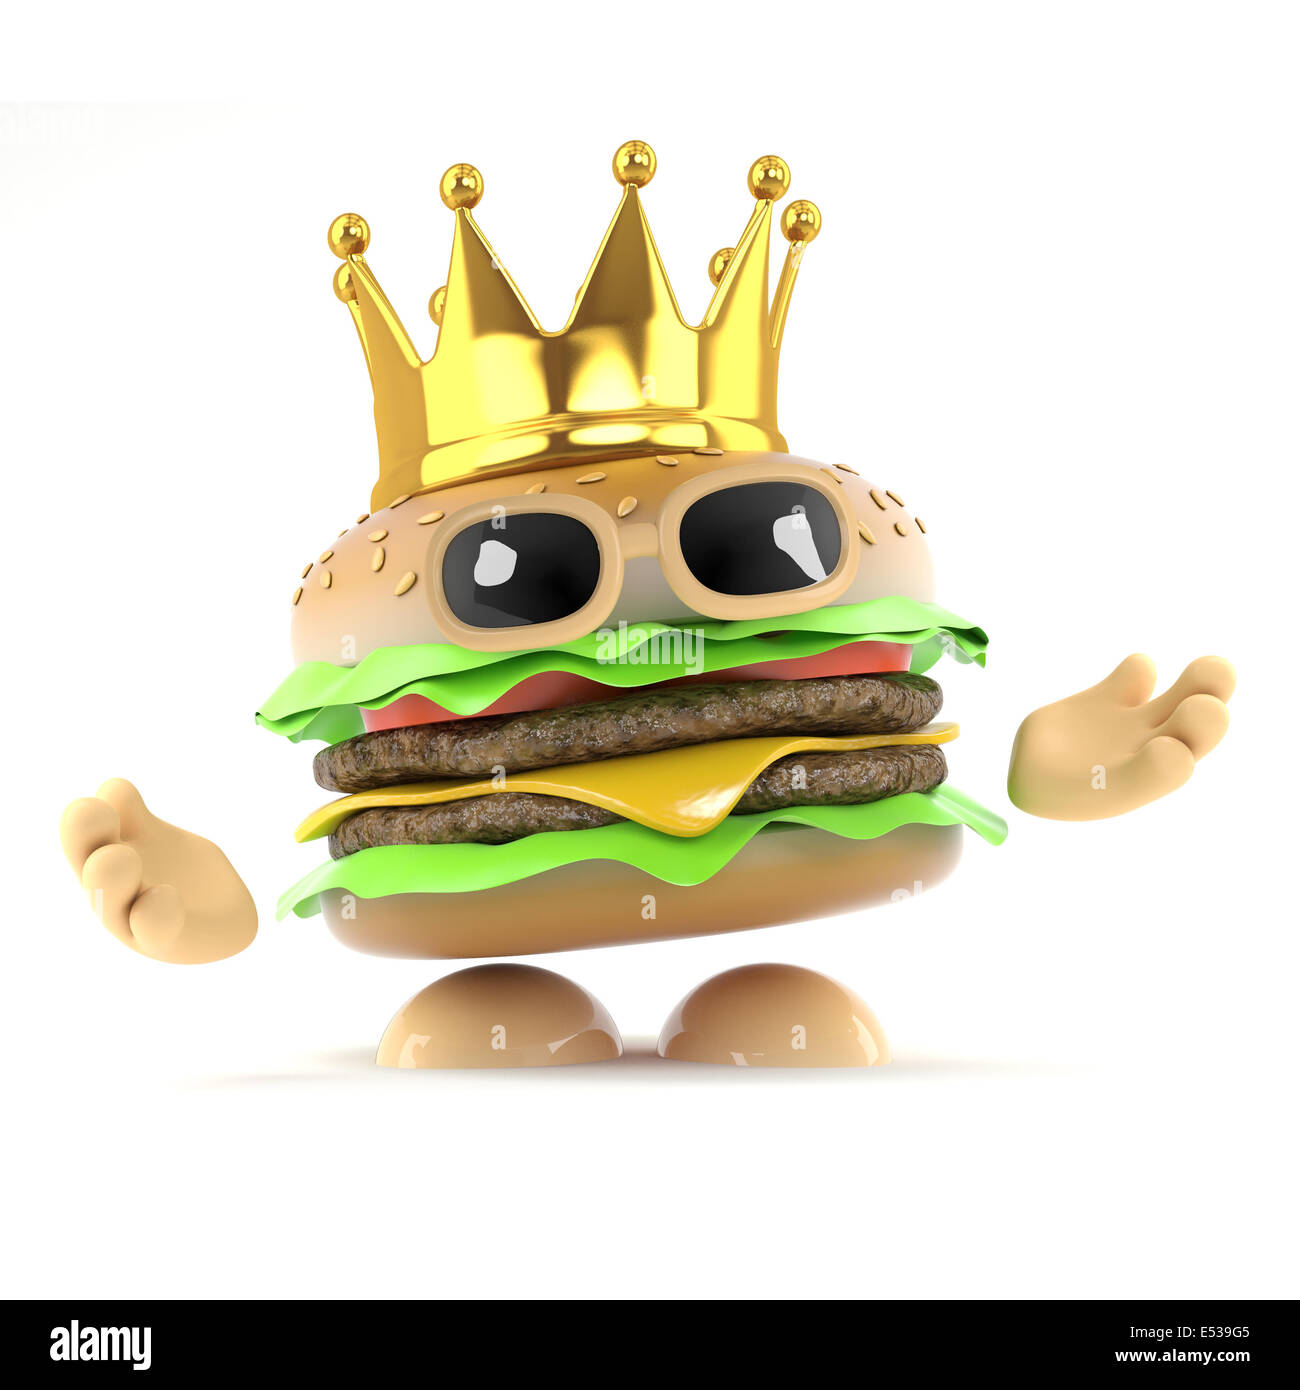 3d Render Of A Beefburger Wearing Gold Crown